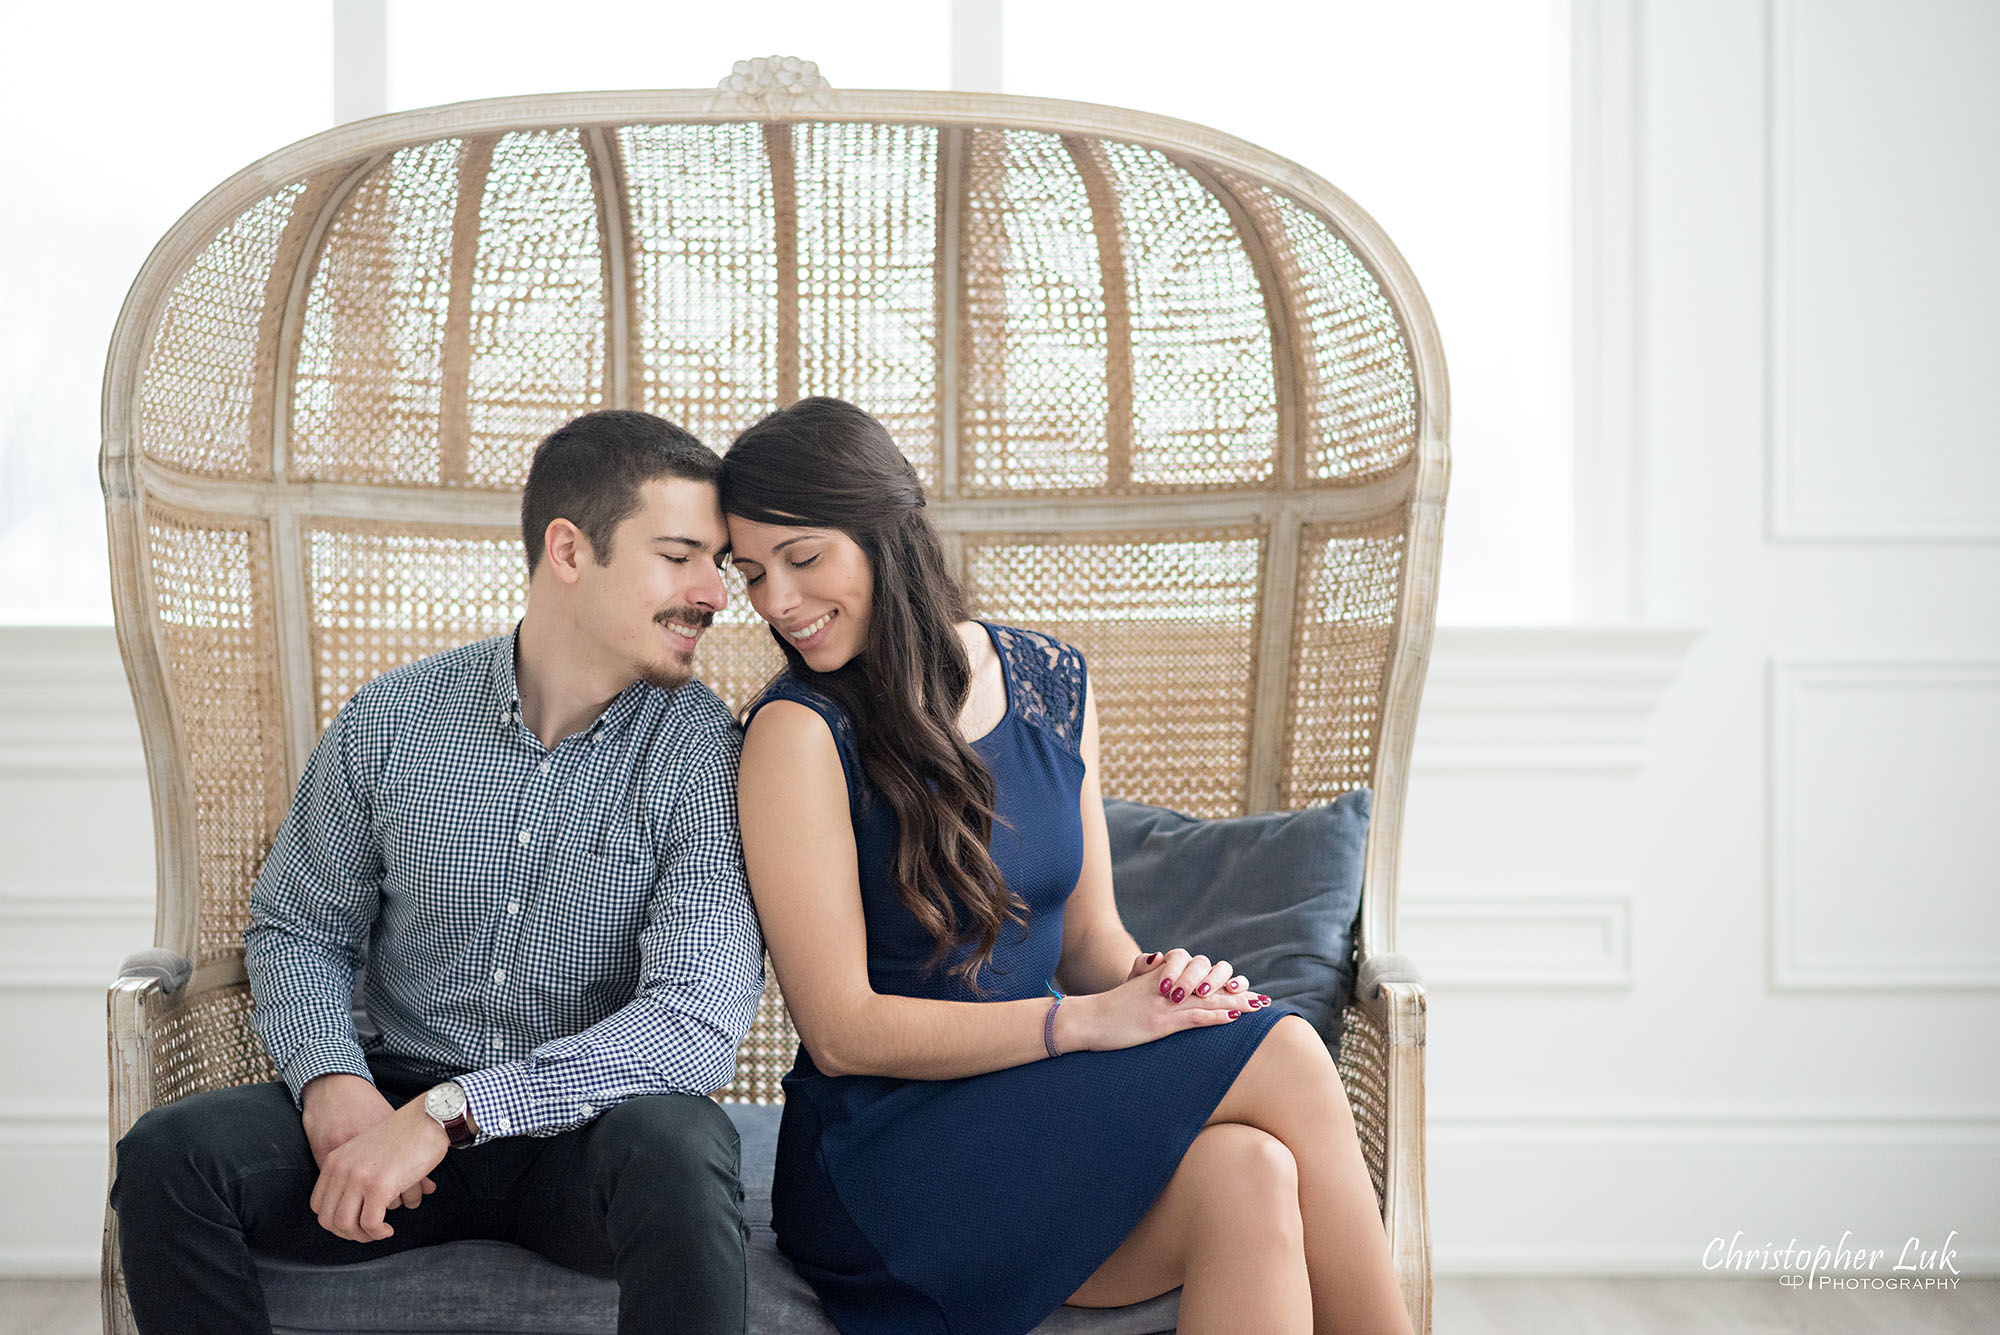 Christopher Luk Toronto Wedding Photographer Mint Room Studios Conservatory Engagement Session Winter Indoor Natural Light Candid Photojournalistic Bride Groom Wicker French Rustic Vintage Dome Loveseat Chair Snuggle Touch Adorable Cute Intimate